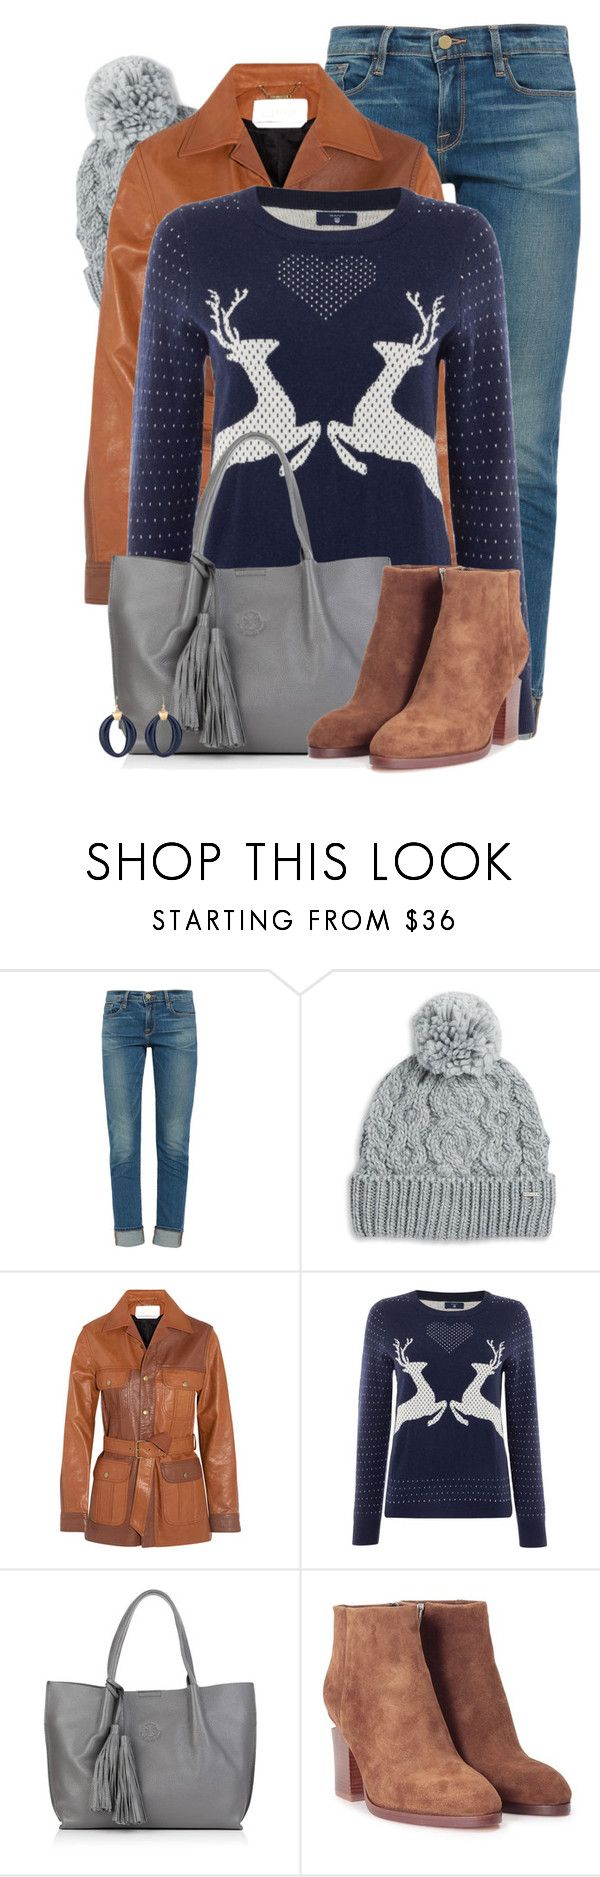 """""""Reindeer Love!"""" by colierollers ❤ liked on Polyvore featuring Frame, Rella, Chloé, GANT, Nadia Minkoff, Alexander Wang and Chico's"""